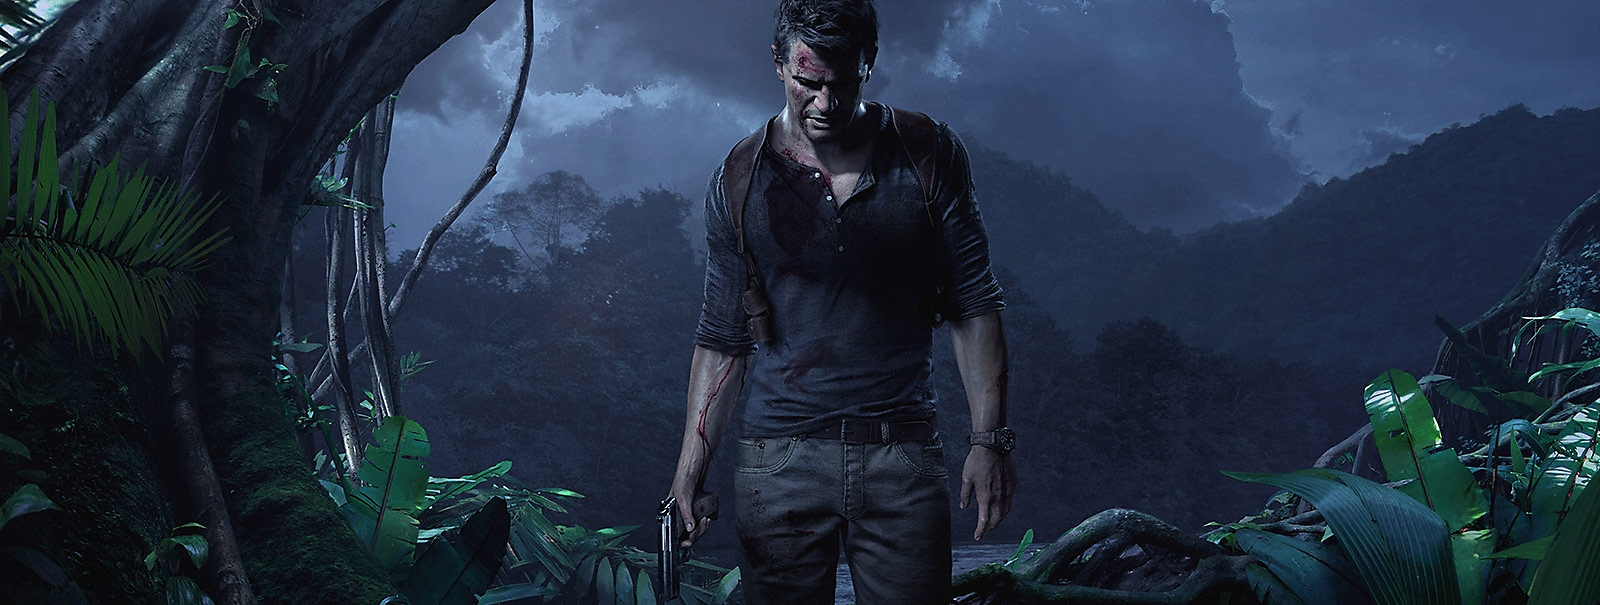 بطل uncharted a thief's end